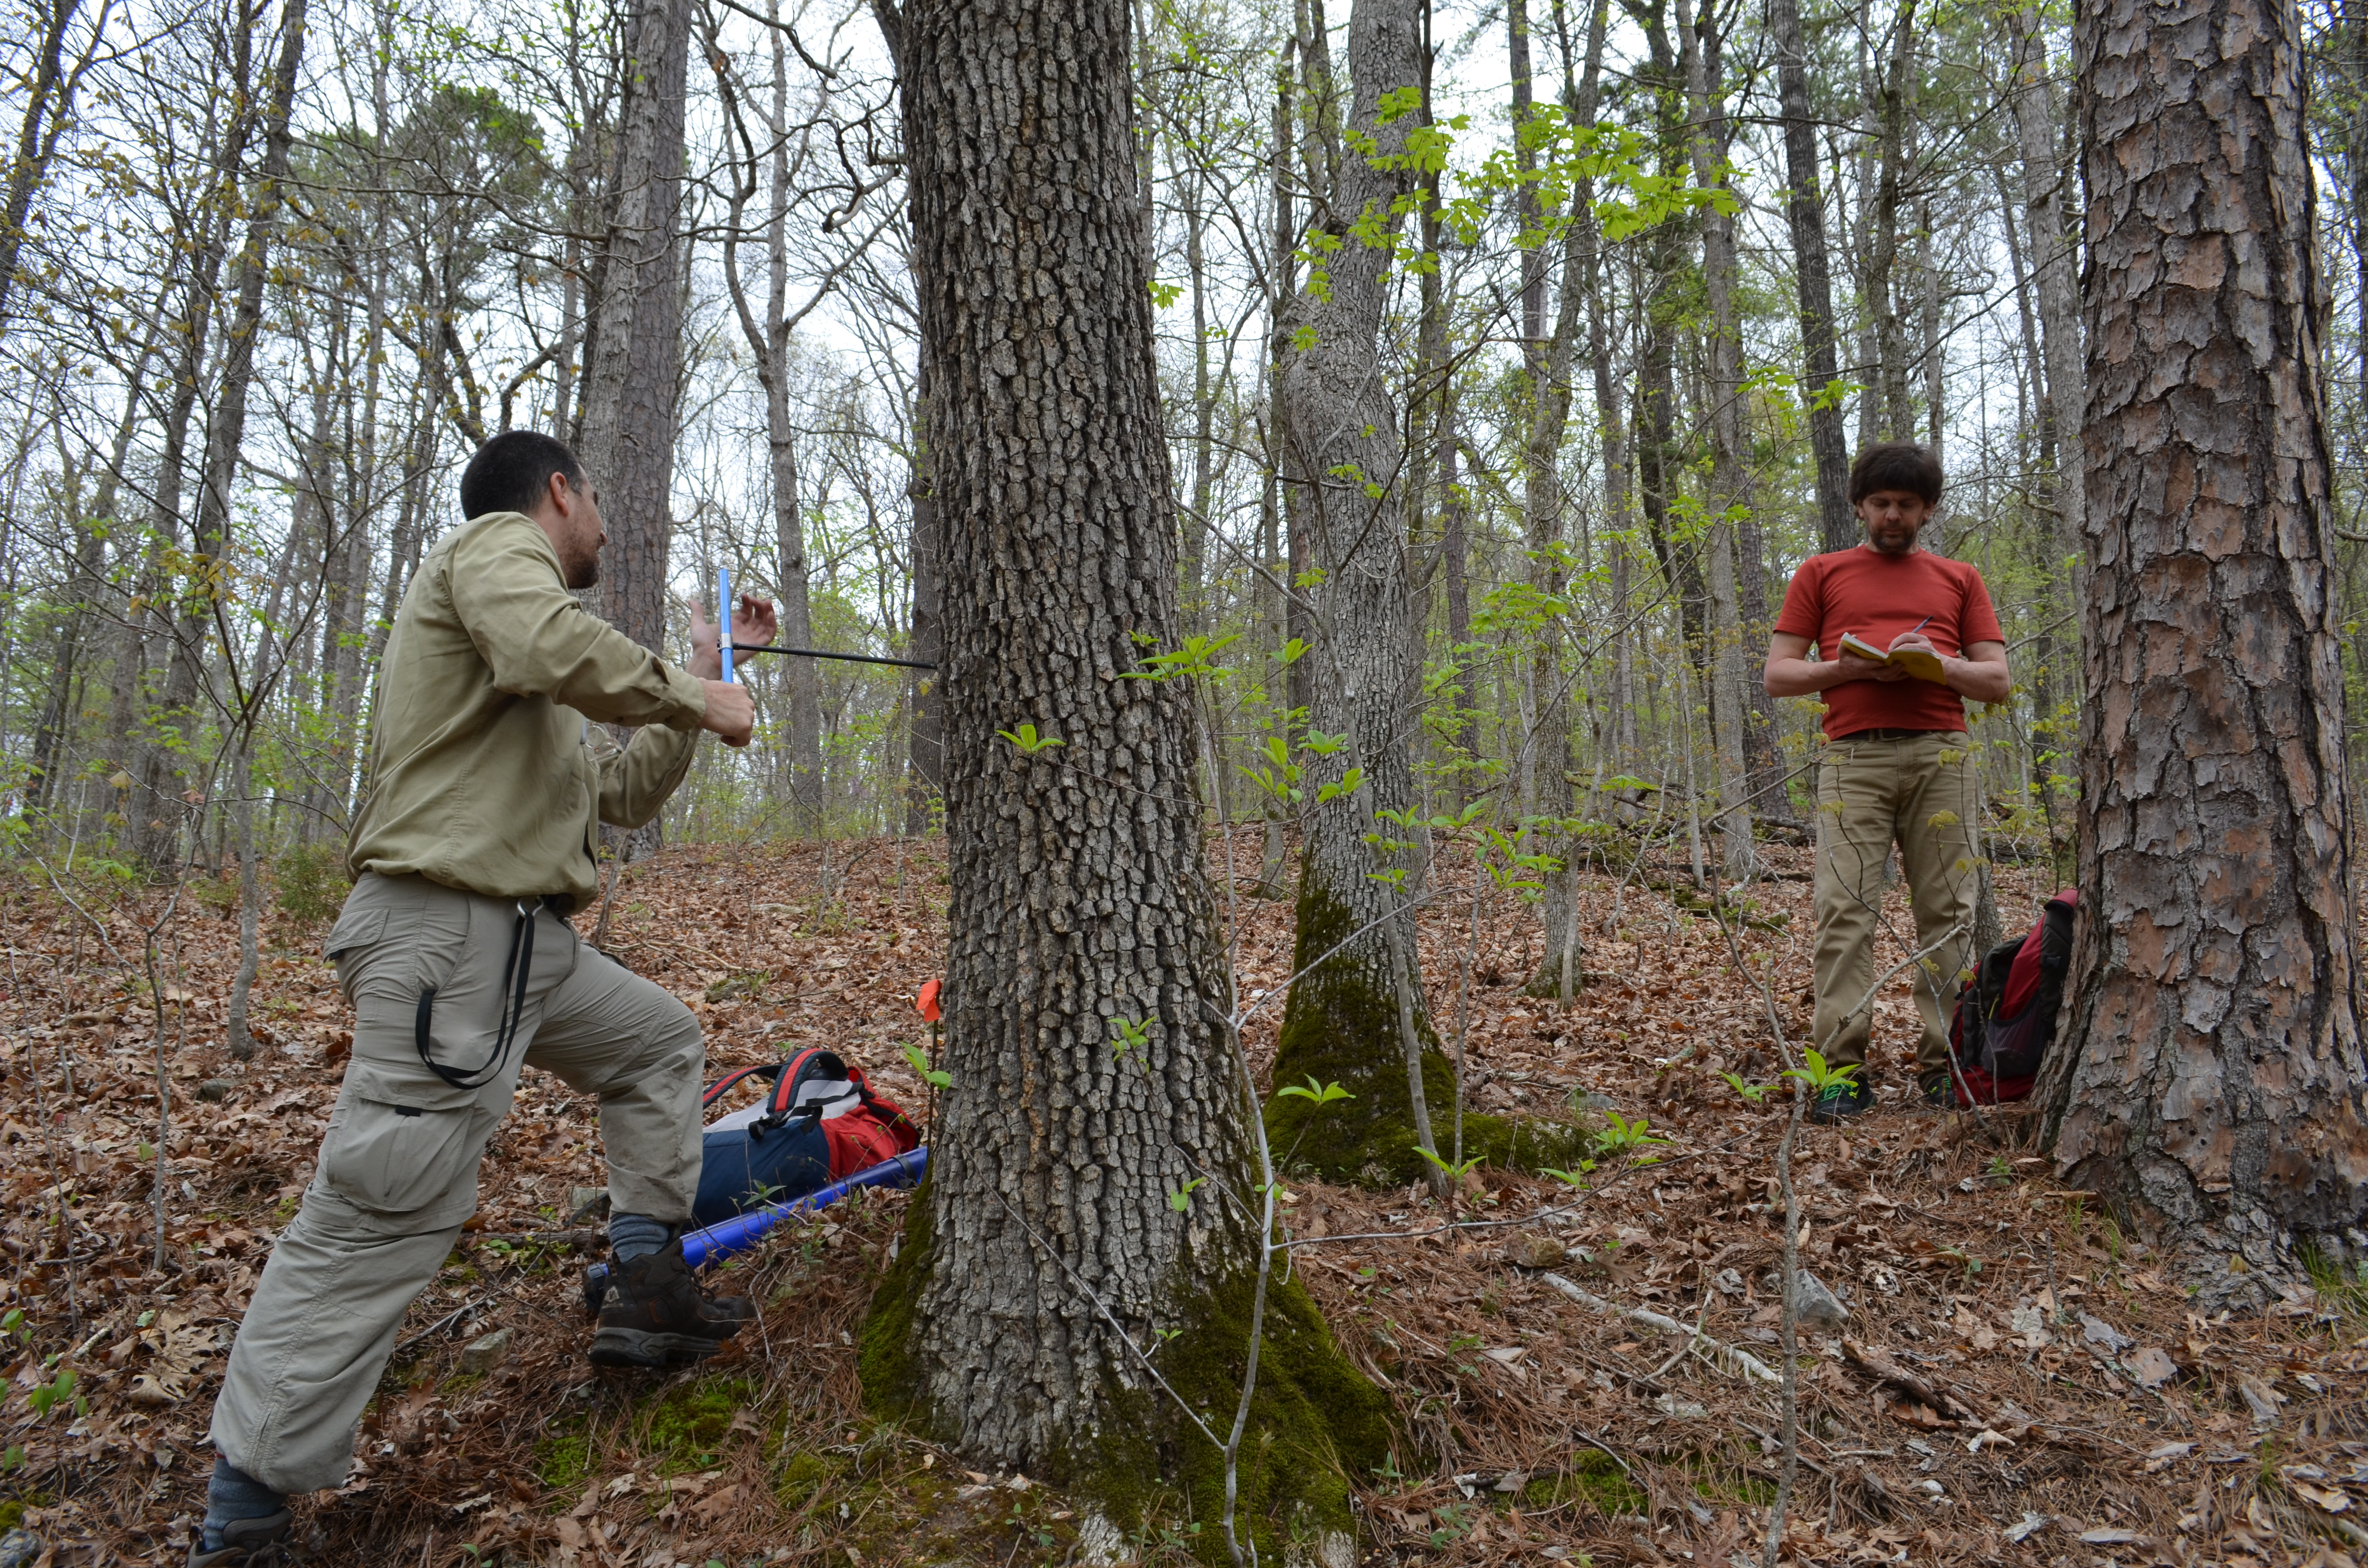 Technician Javier Martin Fernandez drills into a tree in order to sample a cross-section of its rings. Tree-ring scientists Neil Pederson, a Lamont adjunct based at Harvard Forest, notes position, surrounding trees and other data.